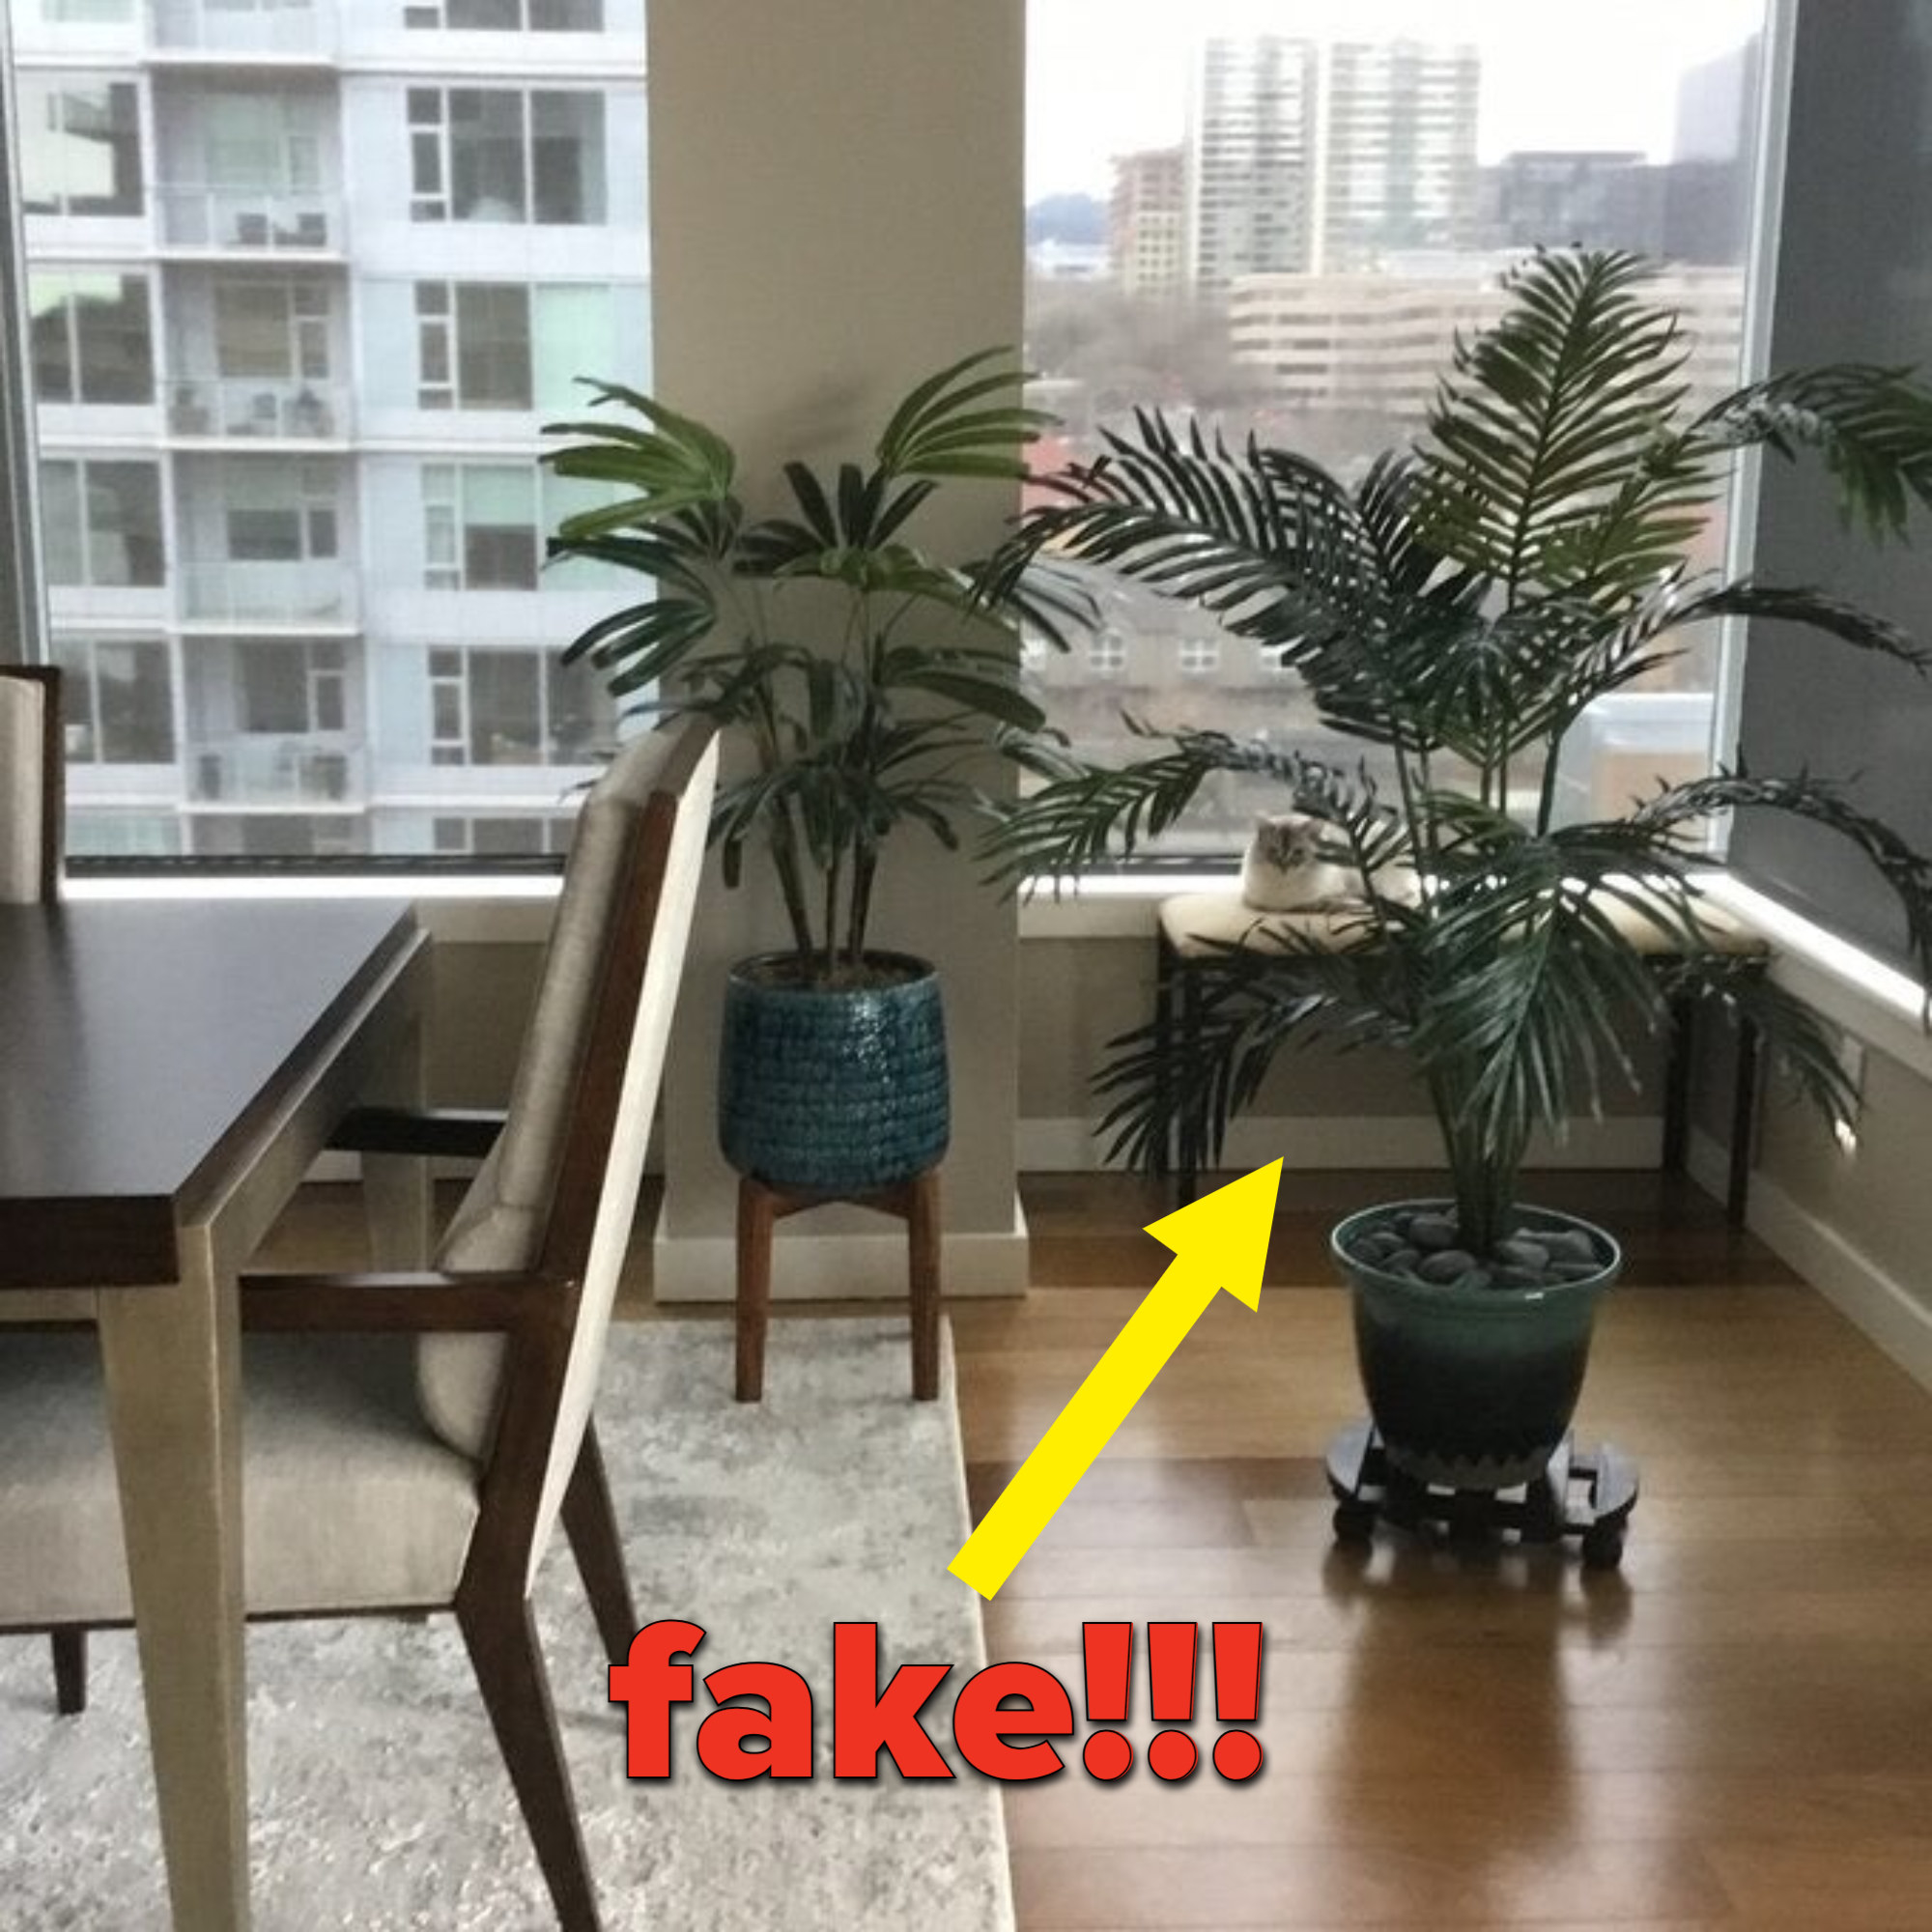 a reviewer's photo of the fake plant in their home